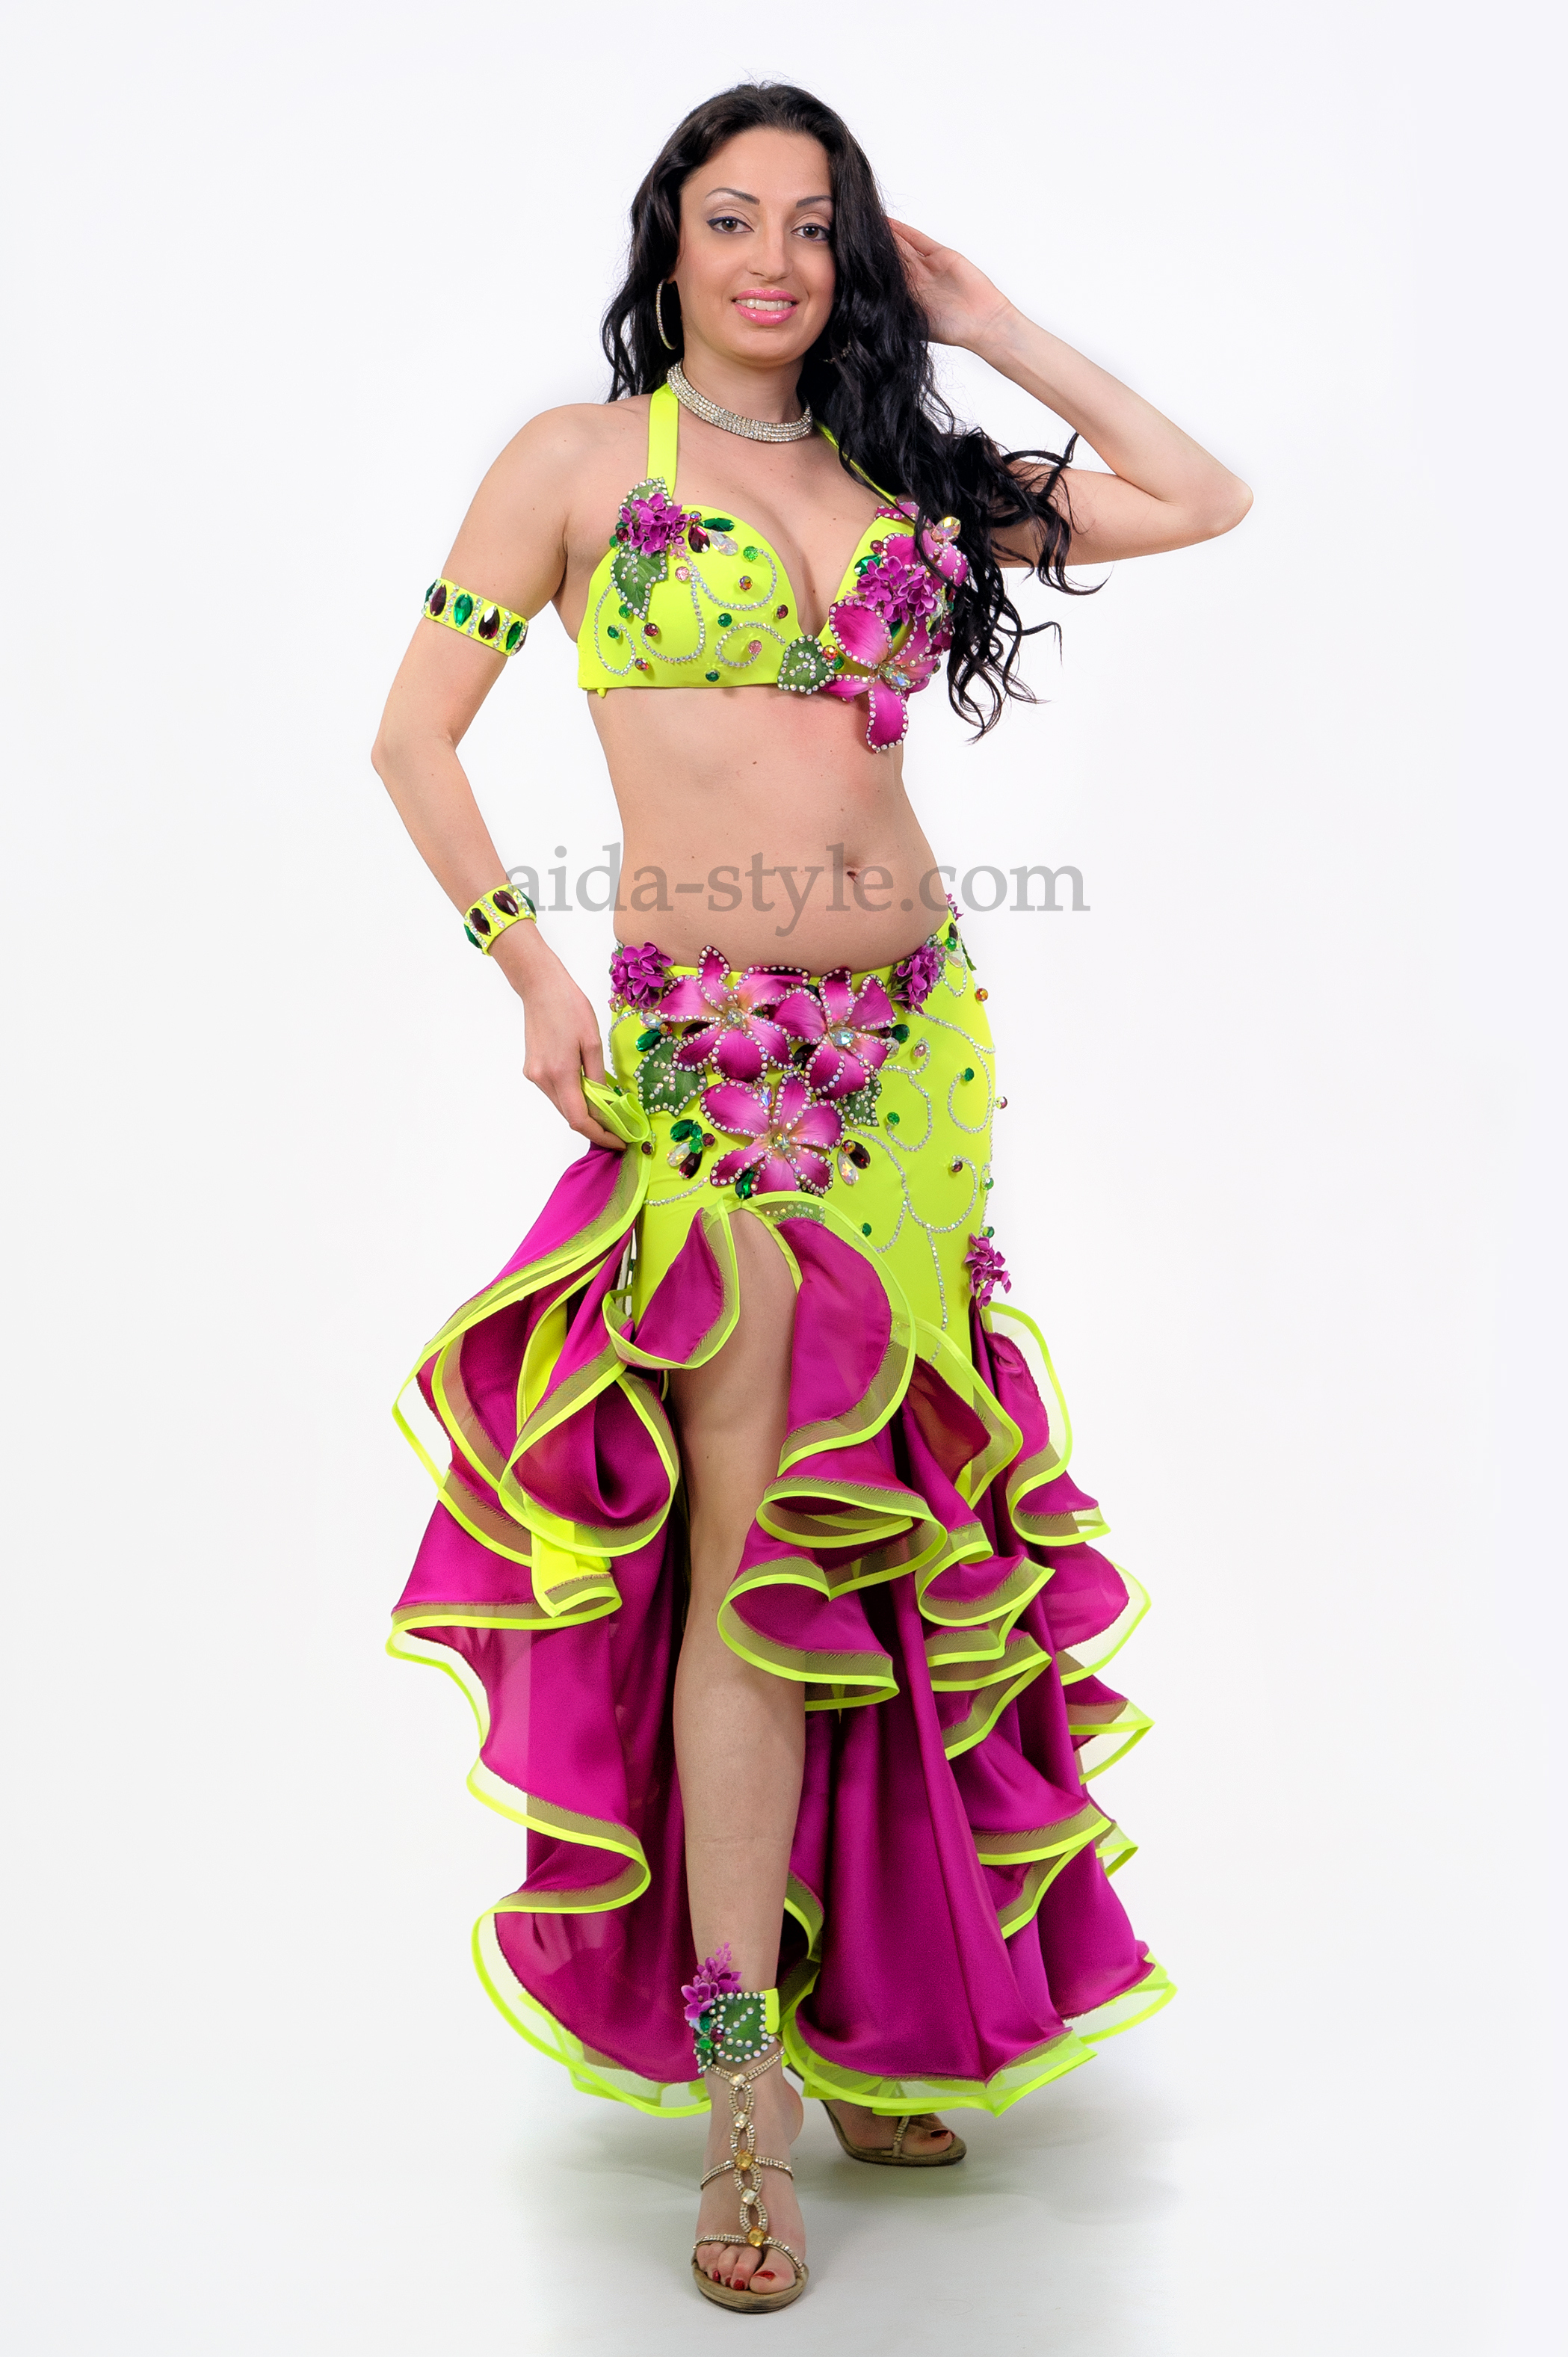 Two-colored professional belly dance dress, of chartreuse and violet colors. The skirt and bra are decorated with bright violet flowers